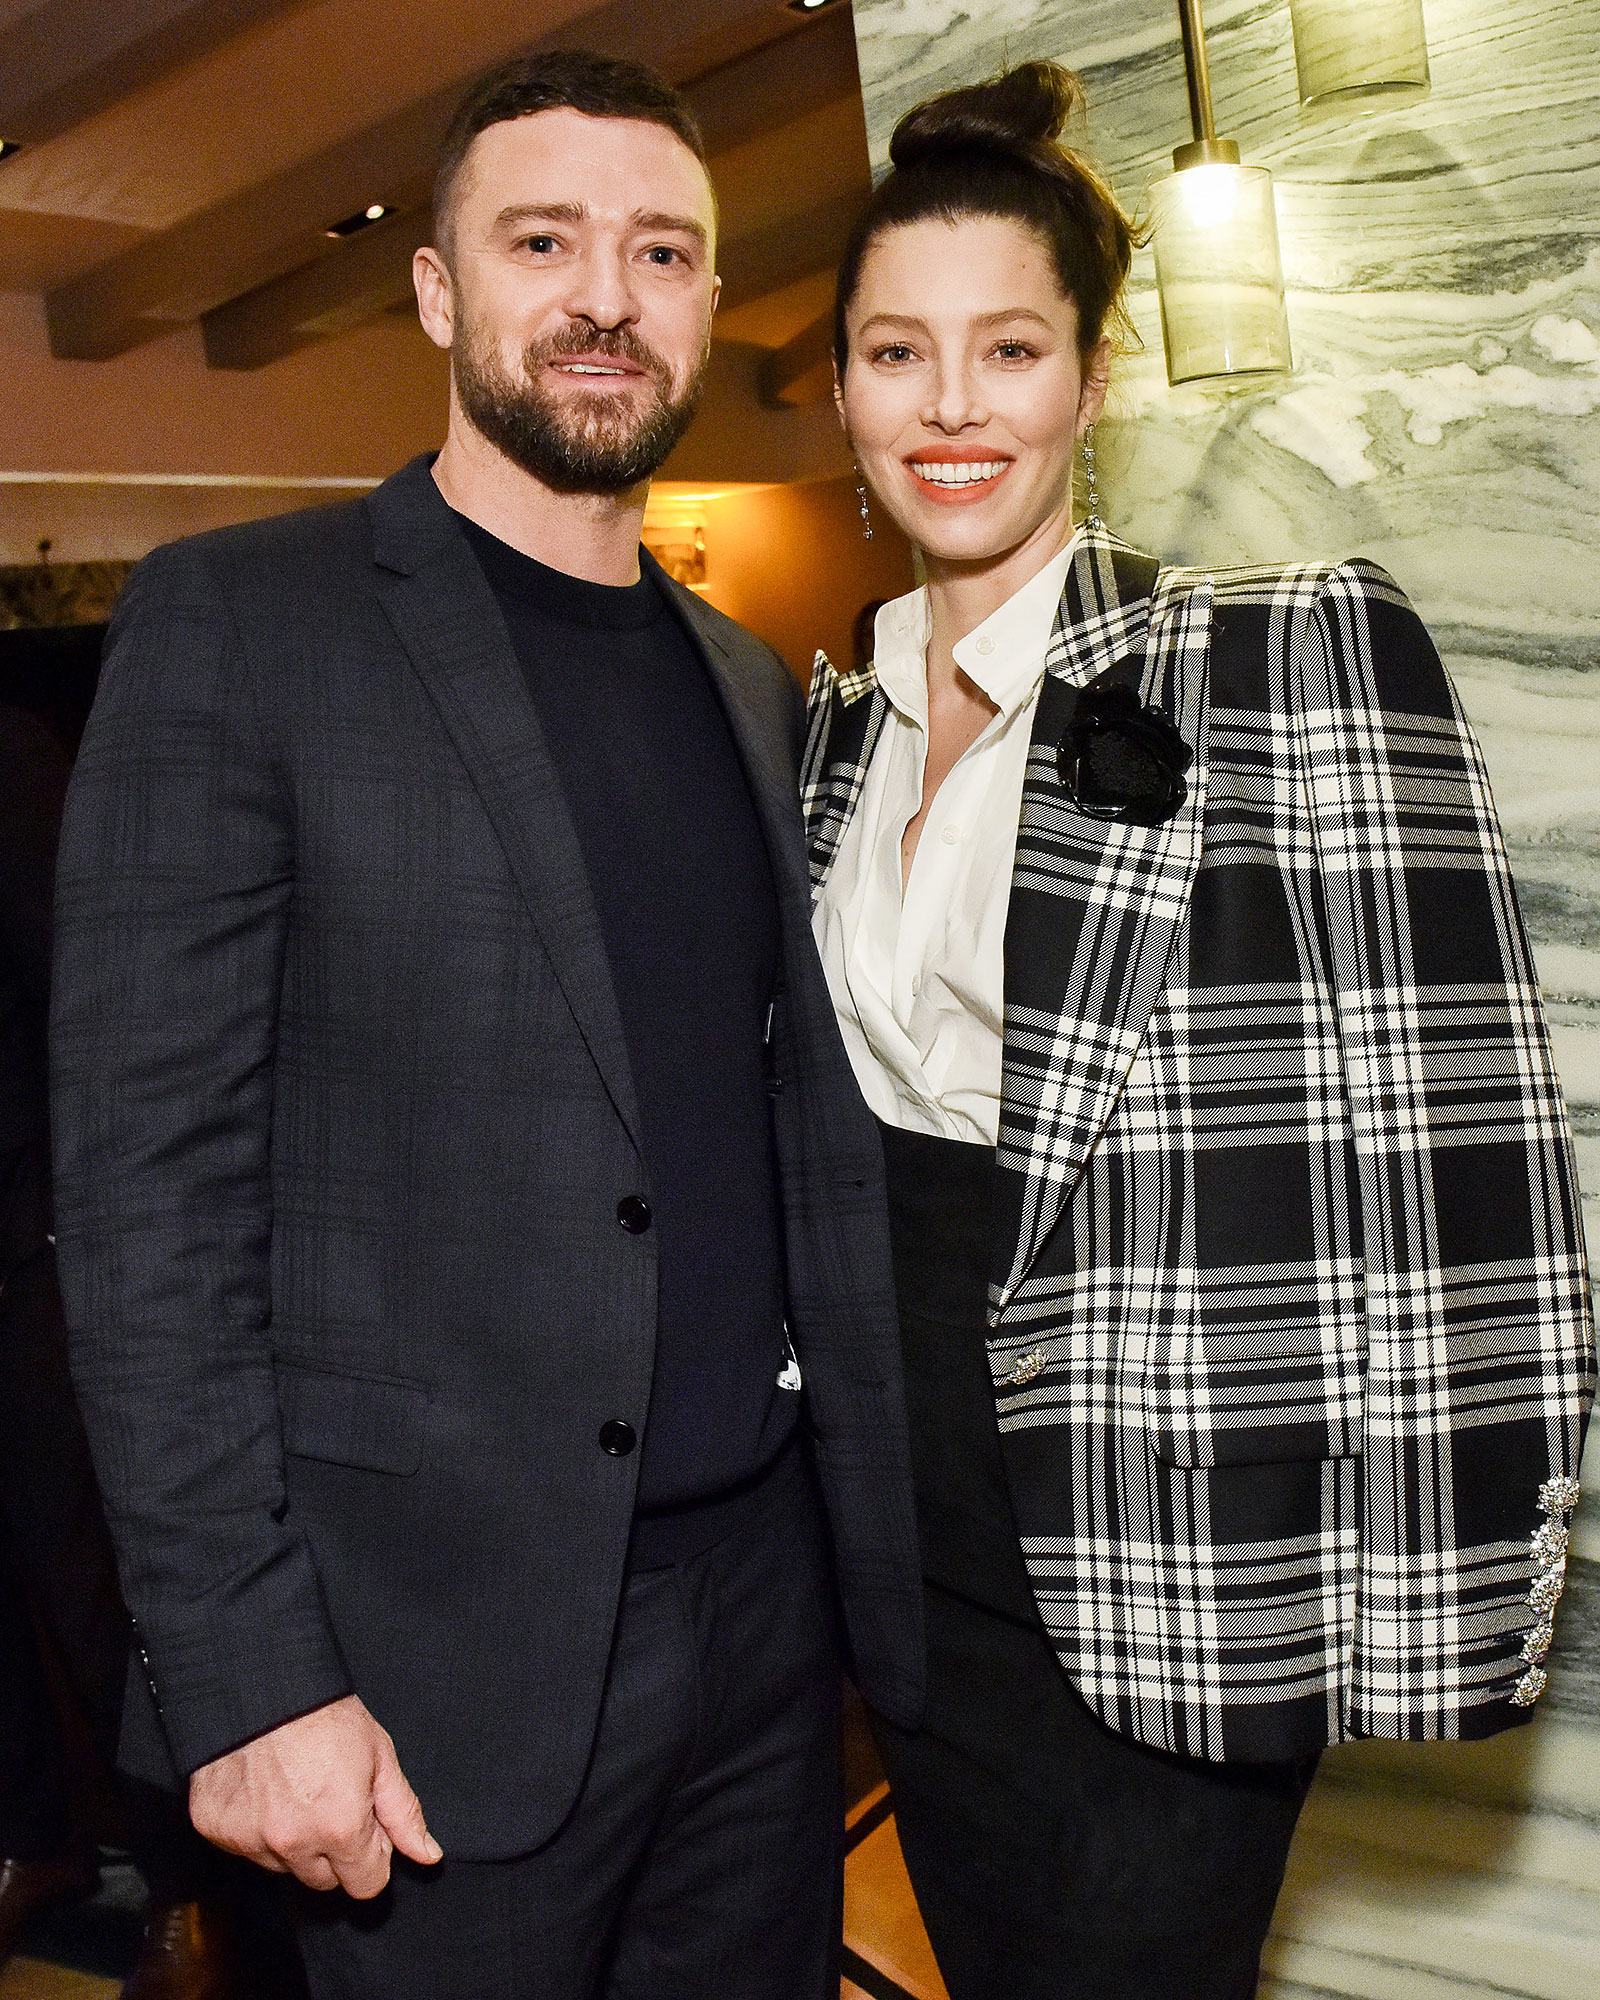 Justin Timberlake and Jessica Biel Are Enjoying Being Together During Quarantine